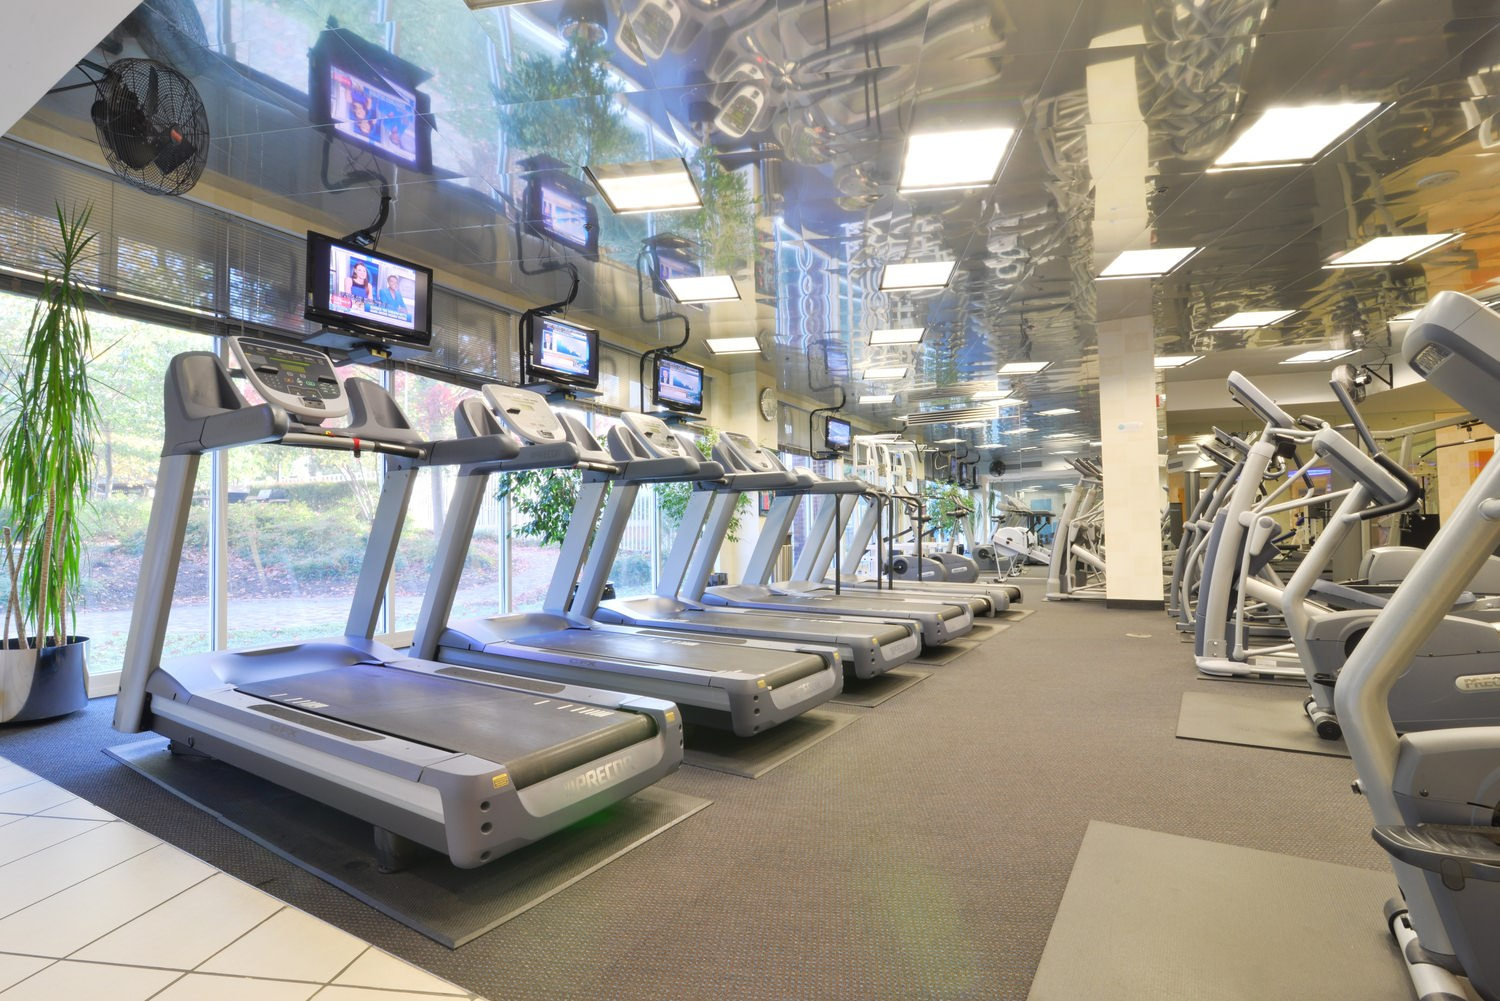 A view of a gym with multiple rows of treadmills.